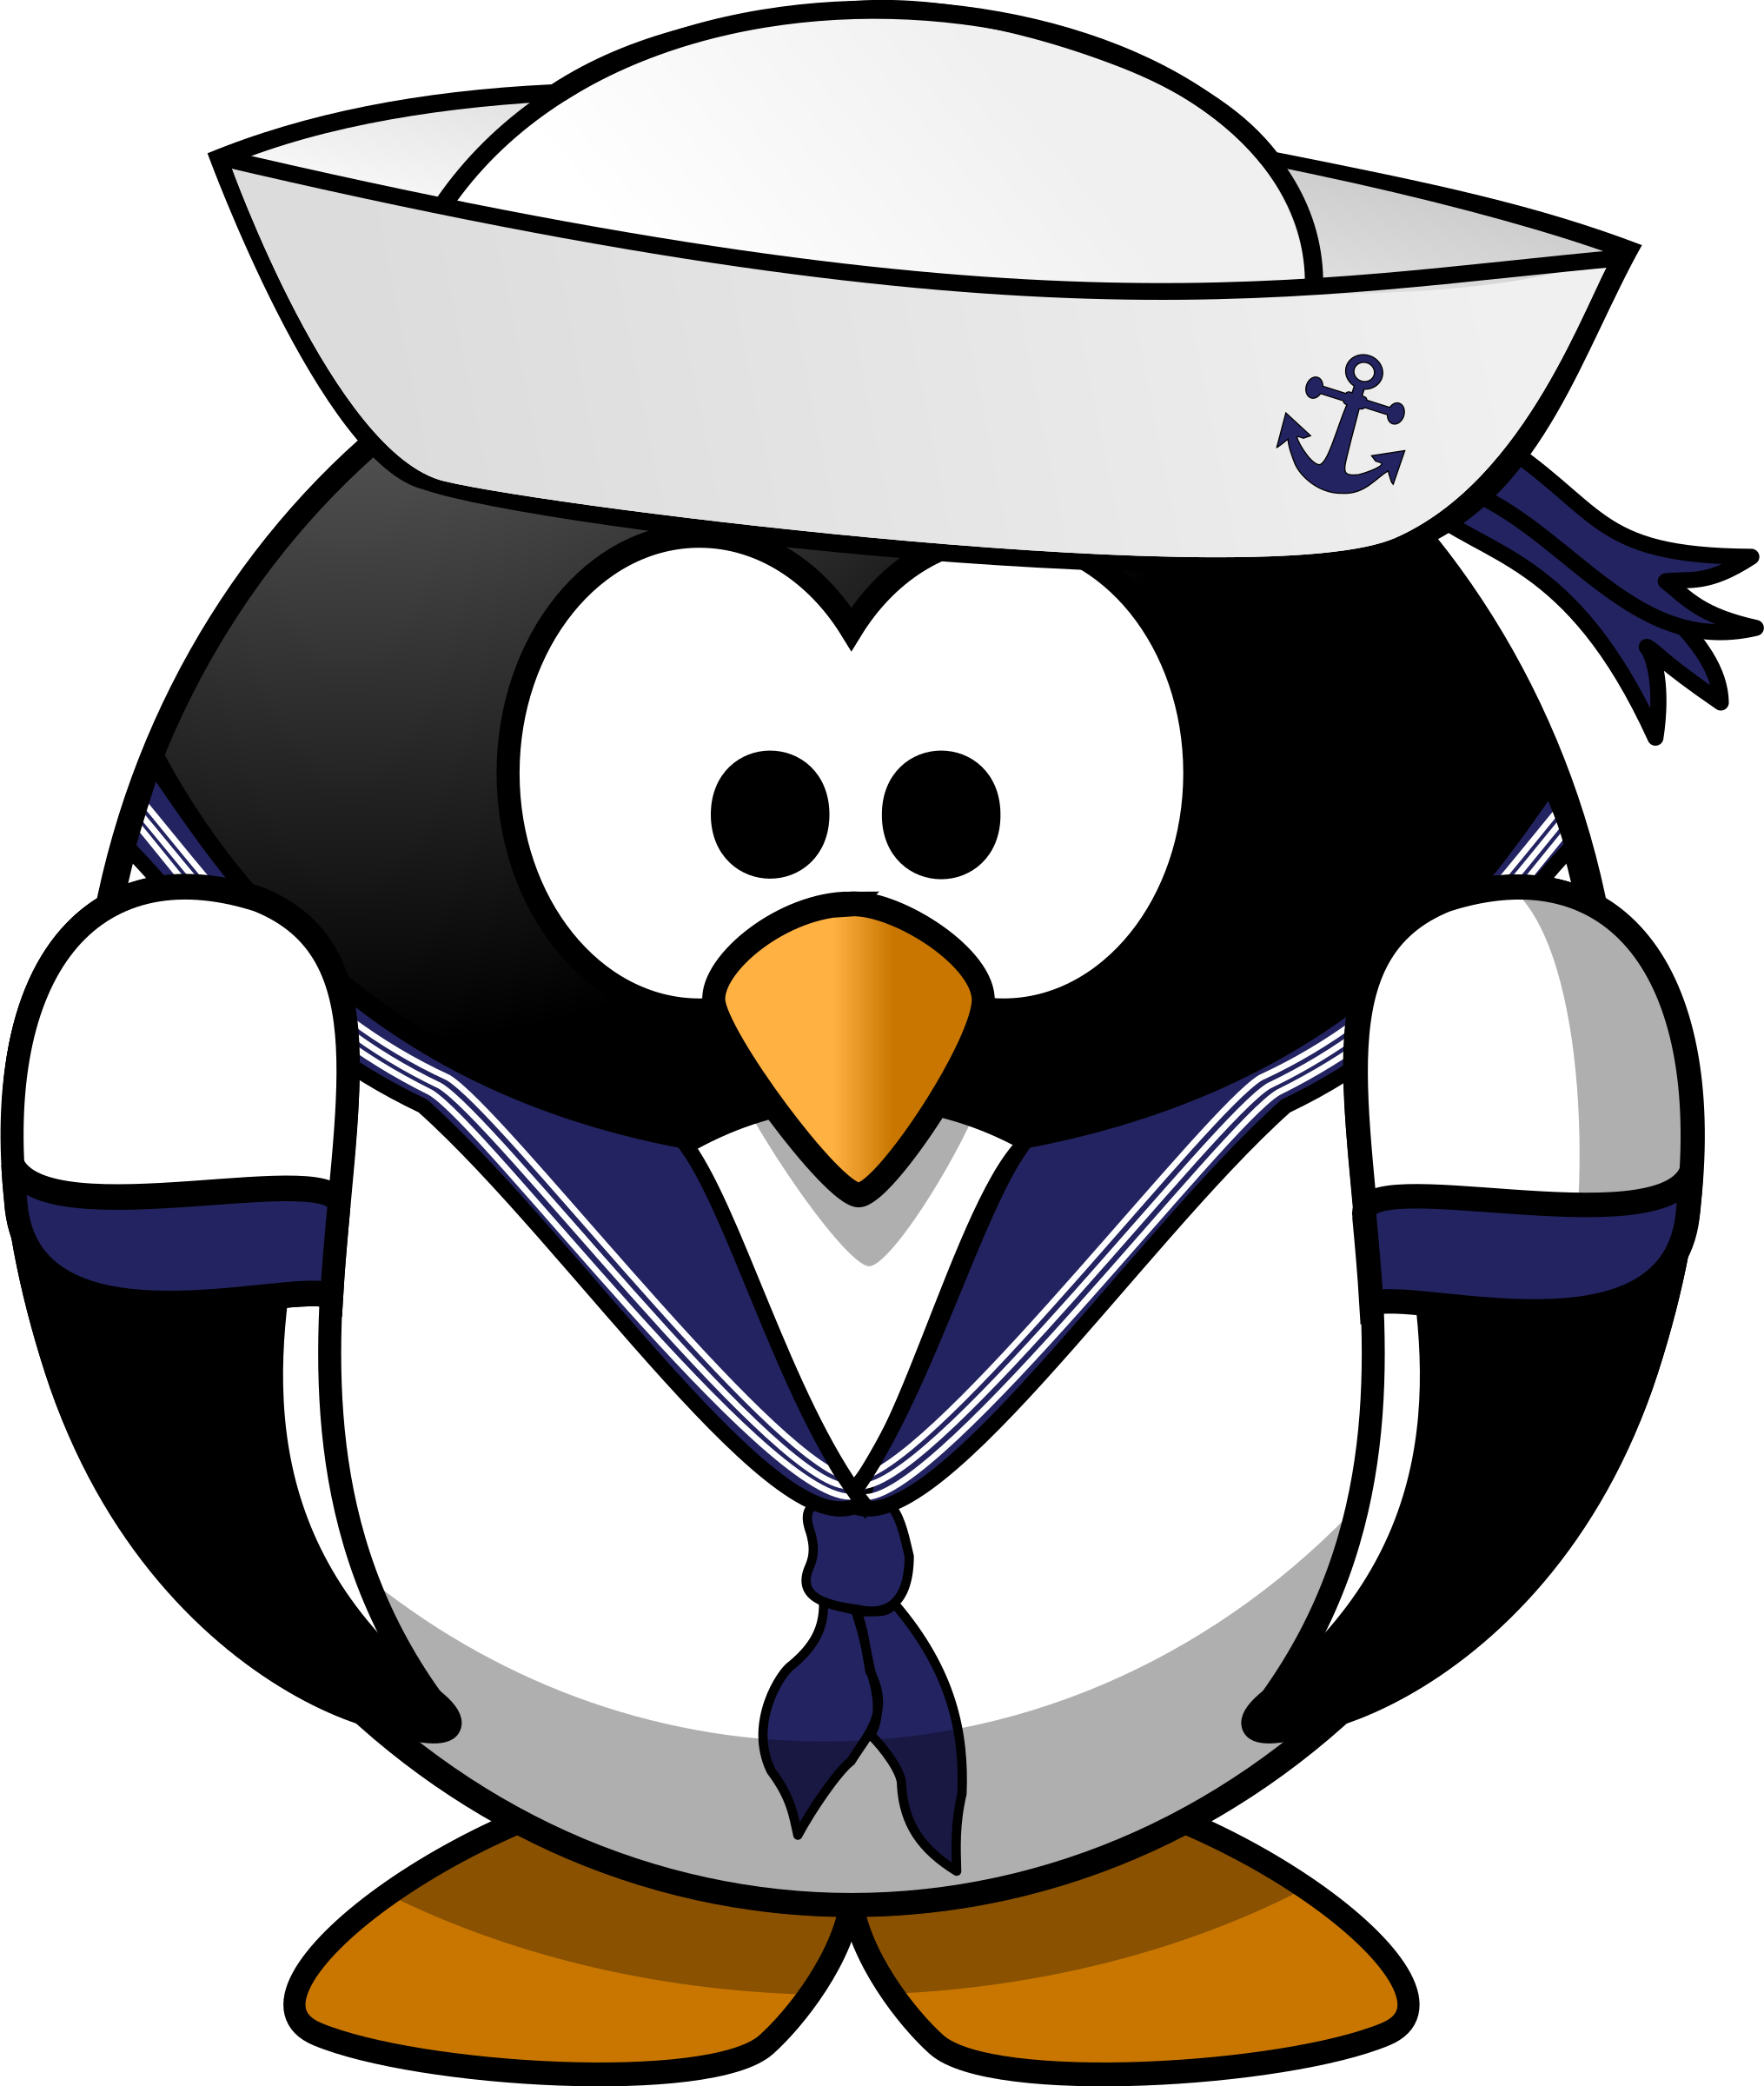 Popeye The Sailor Clipart #1. BIG IMAGE (PNG)